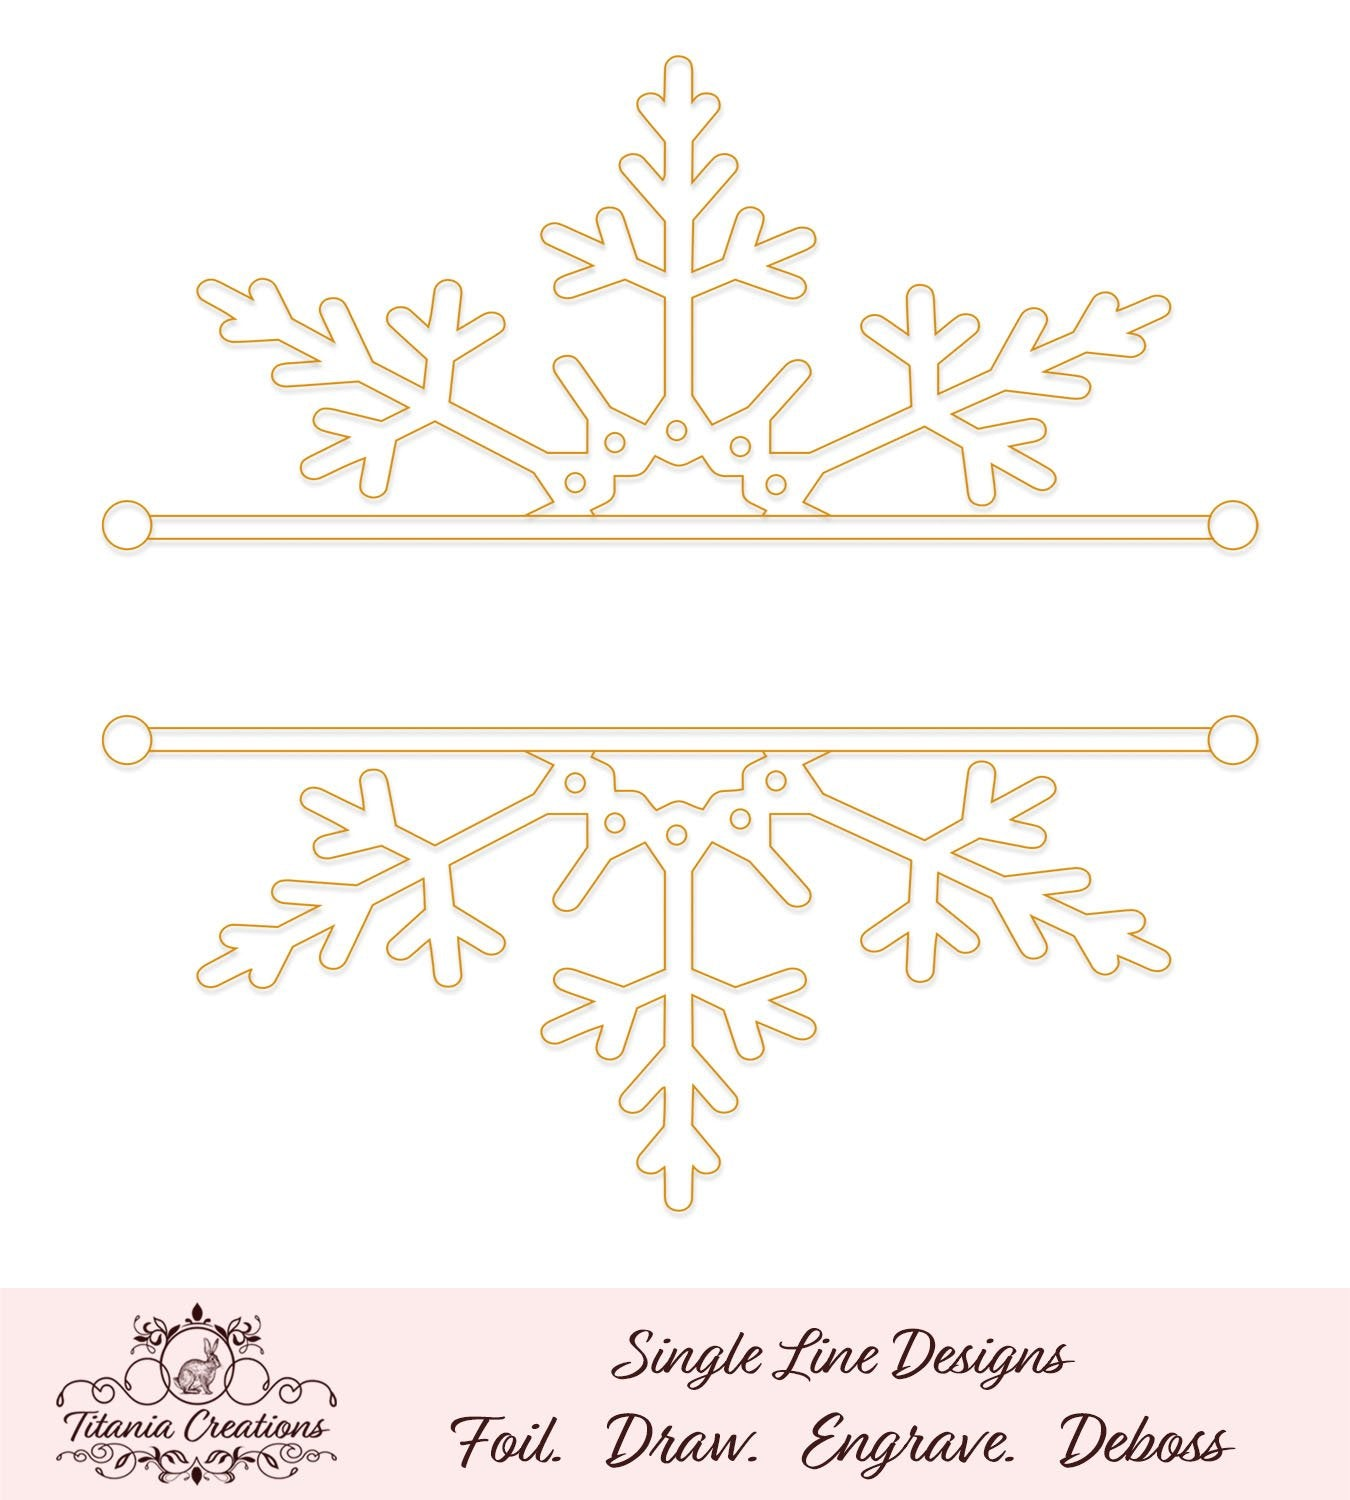 Single Line Split Snowflake Foil Quill Svg